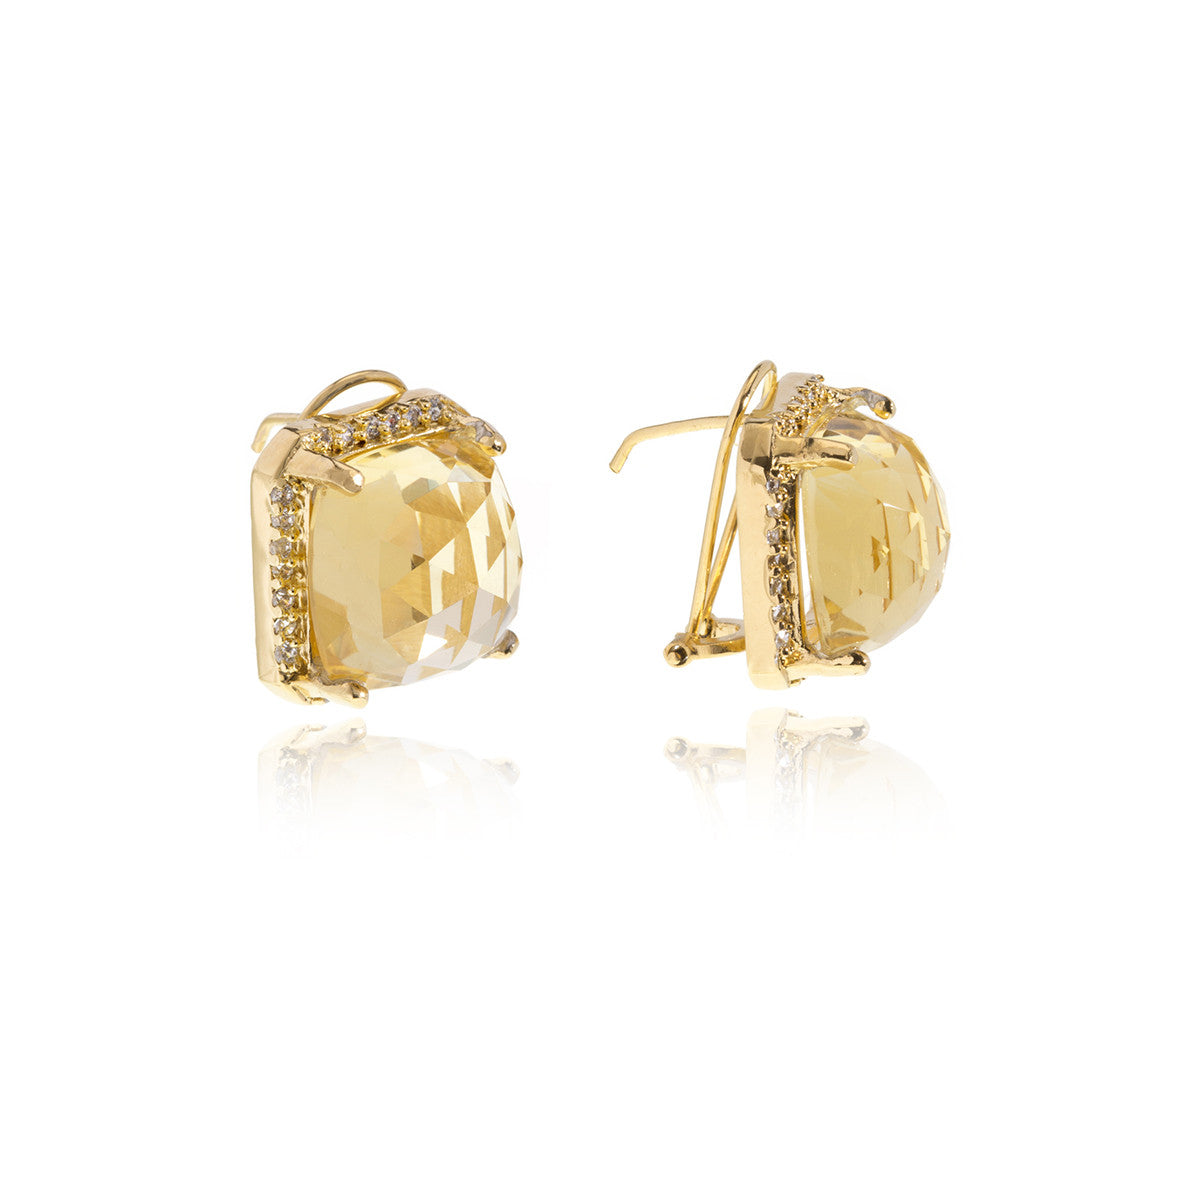 Luxe Gold Earrings - Georgina Jewelry